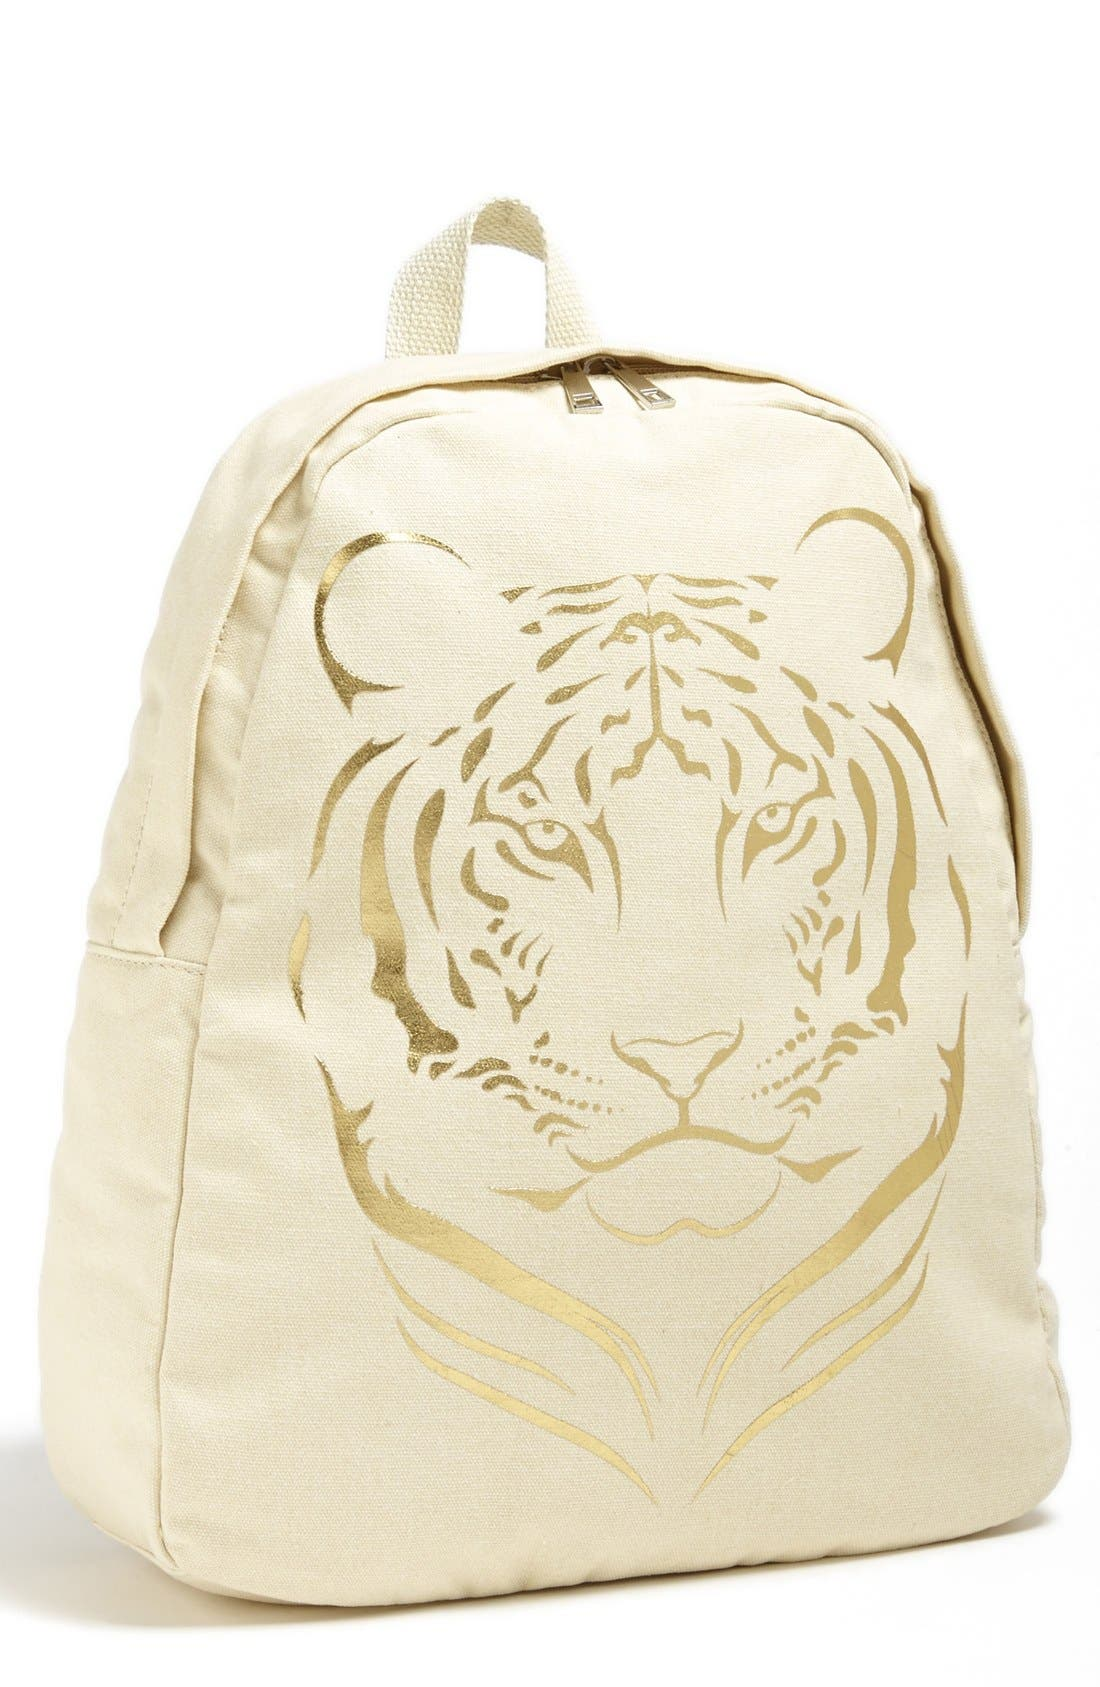 Alternate Image 1 Selected - Amici Accessories Tiger Print Backpack (Juniors) (Online Only)